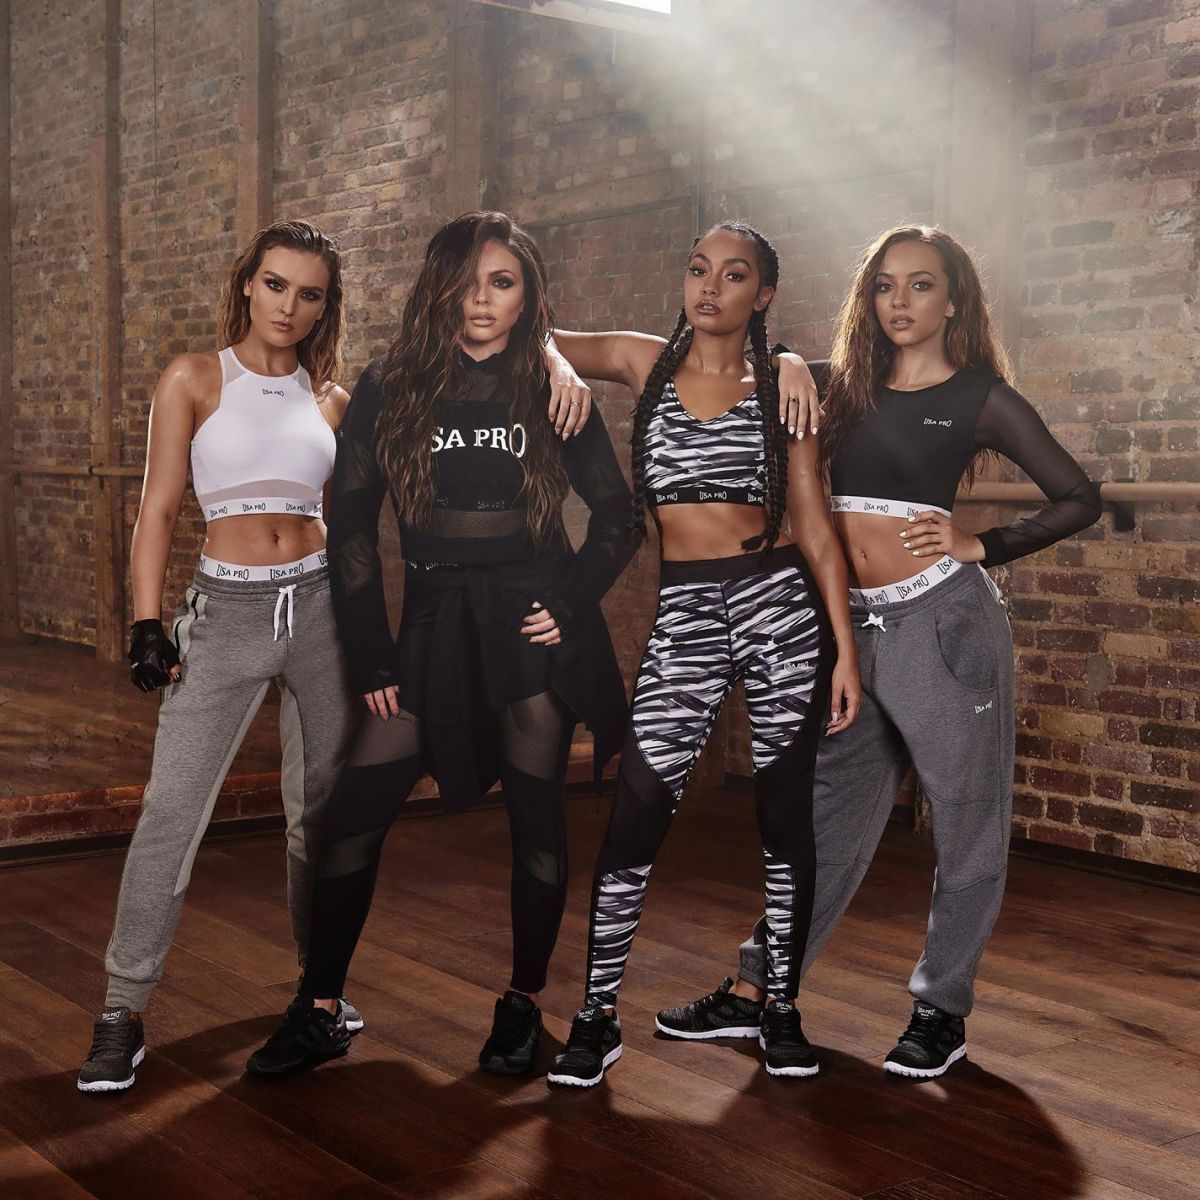 LITTLE MIX for USA Pro #2, 2016